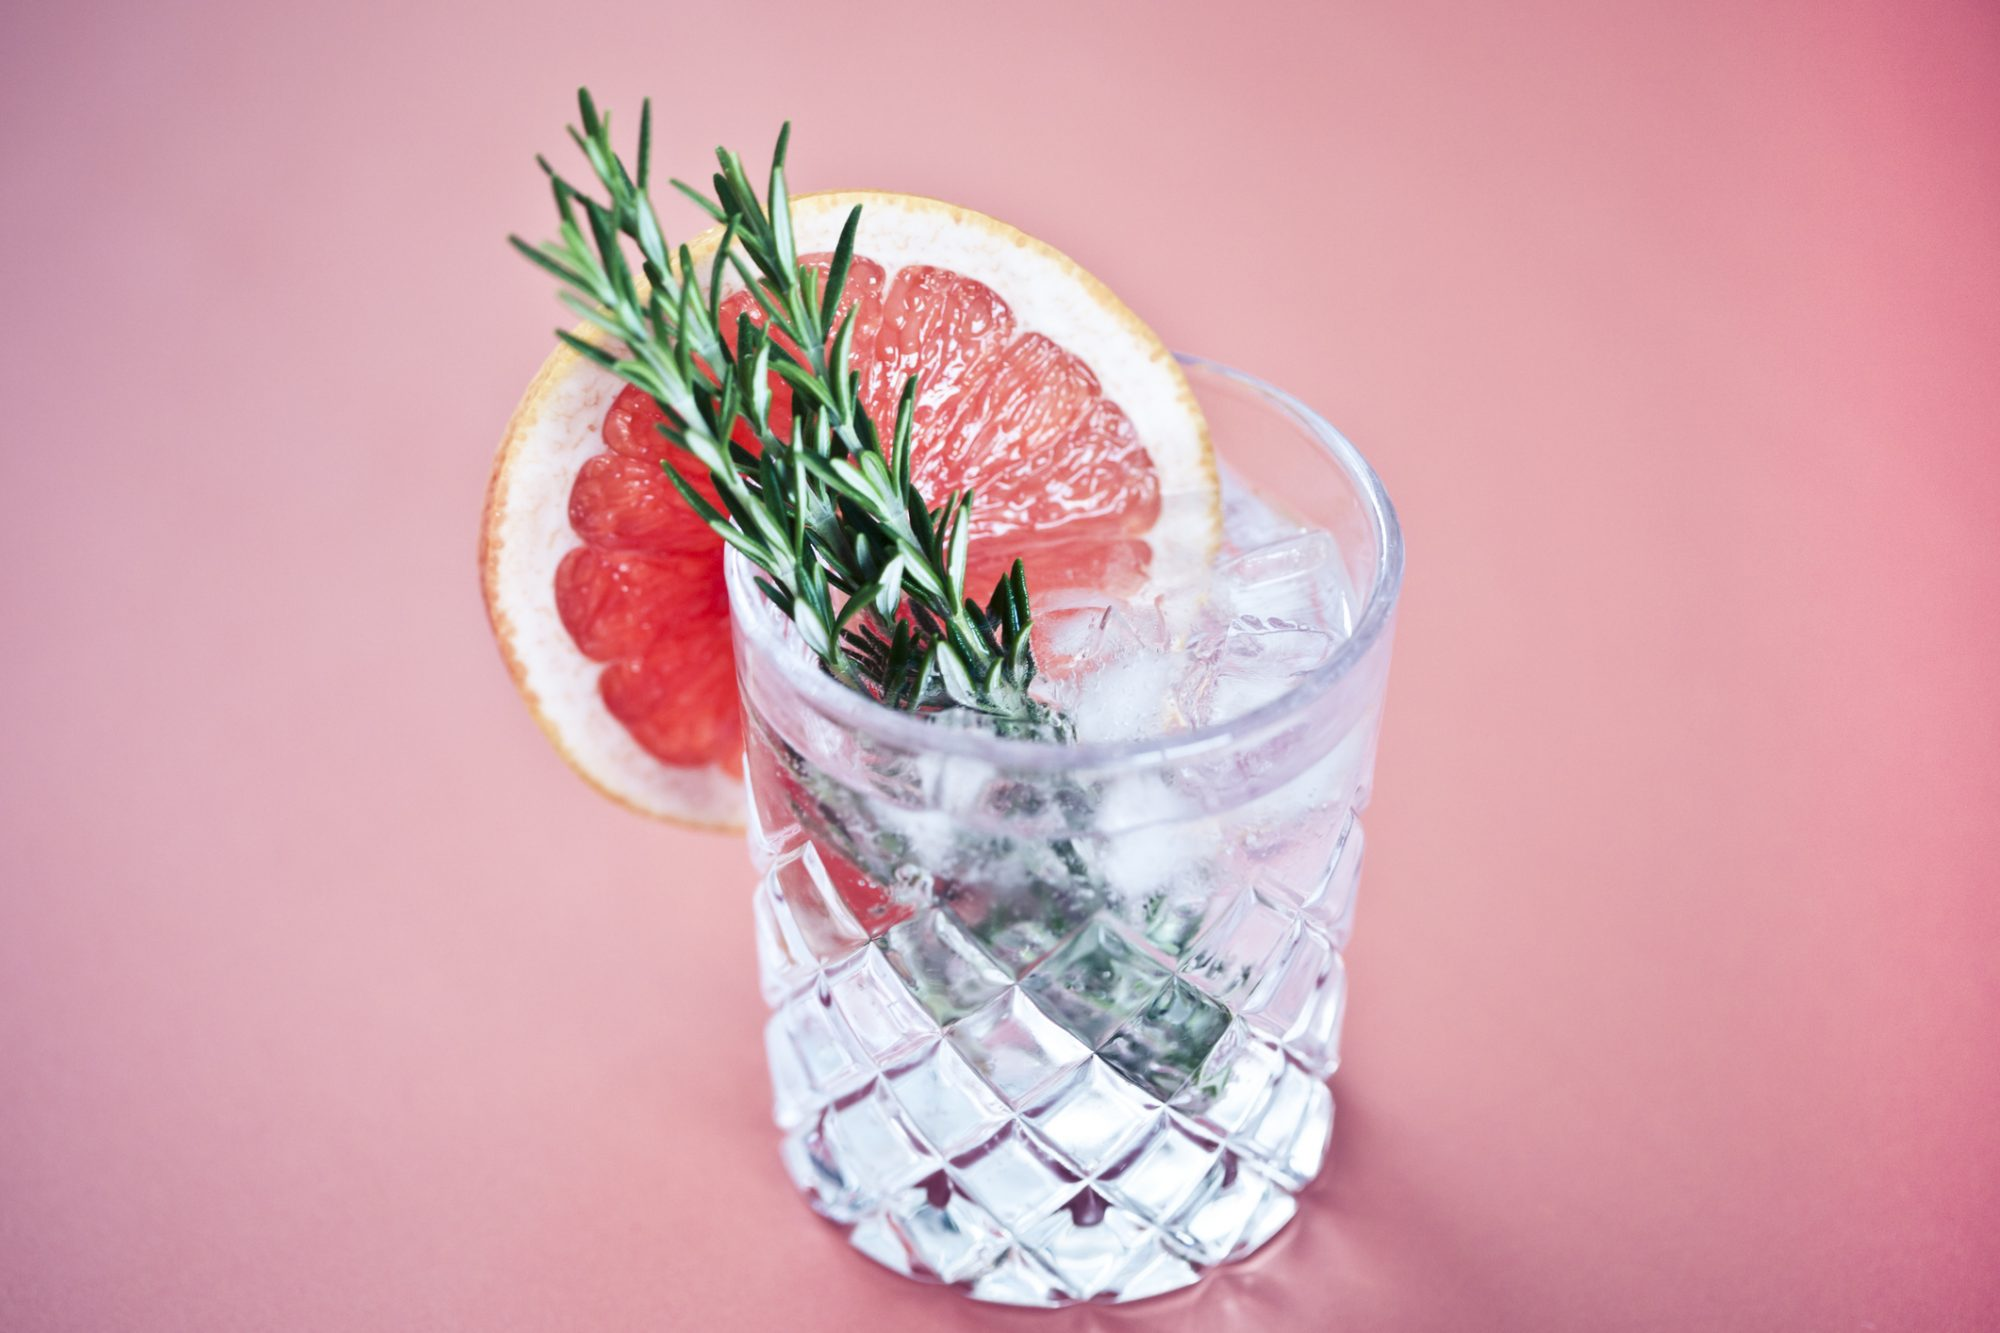 Close-up of a glass of gin and tonic with a slice of pink grapefruit and sprigs of rosemary on a white background.